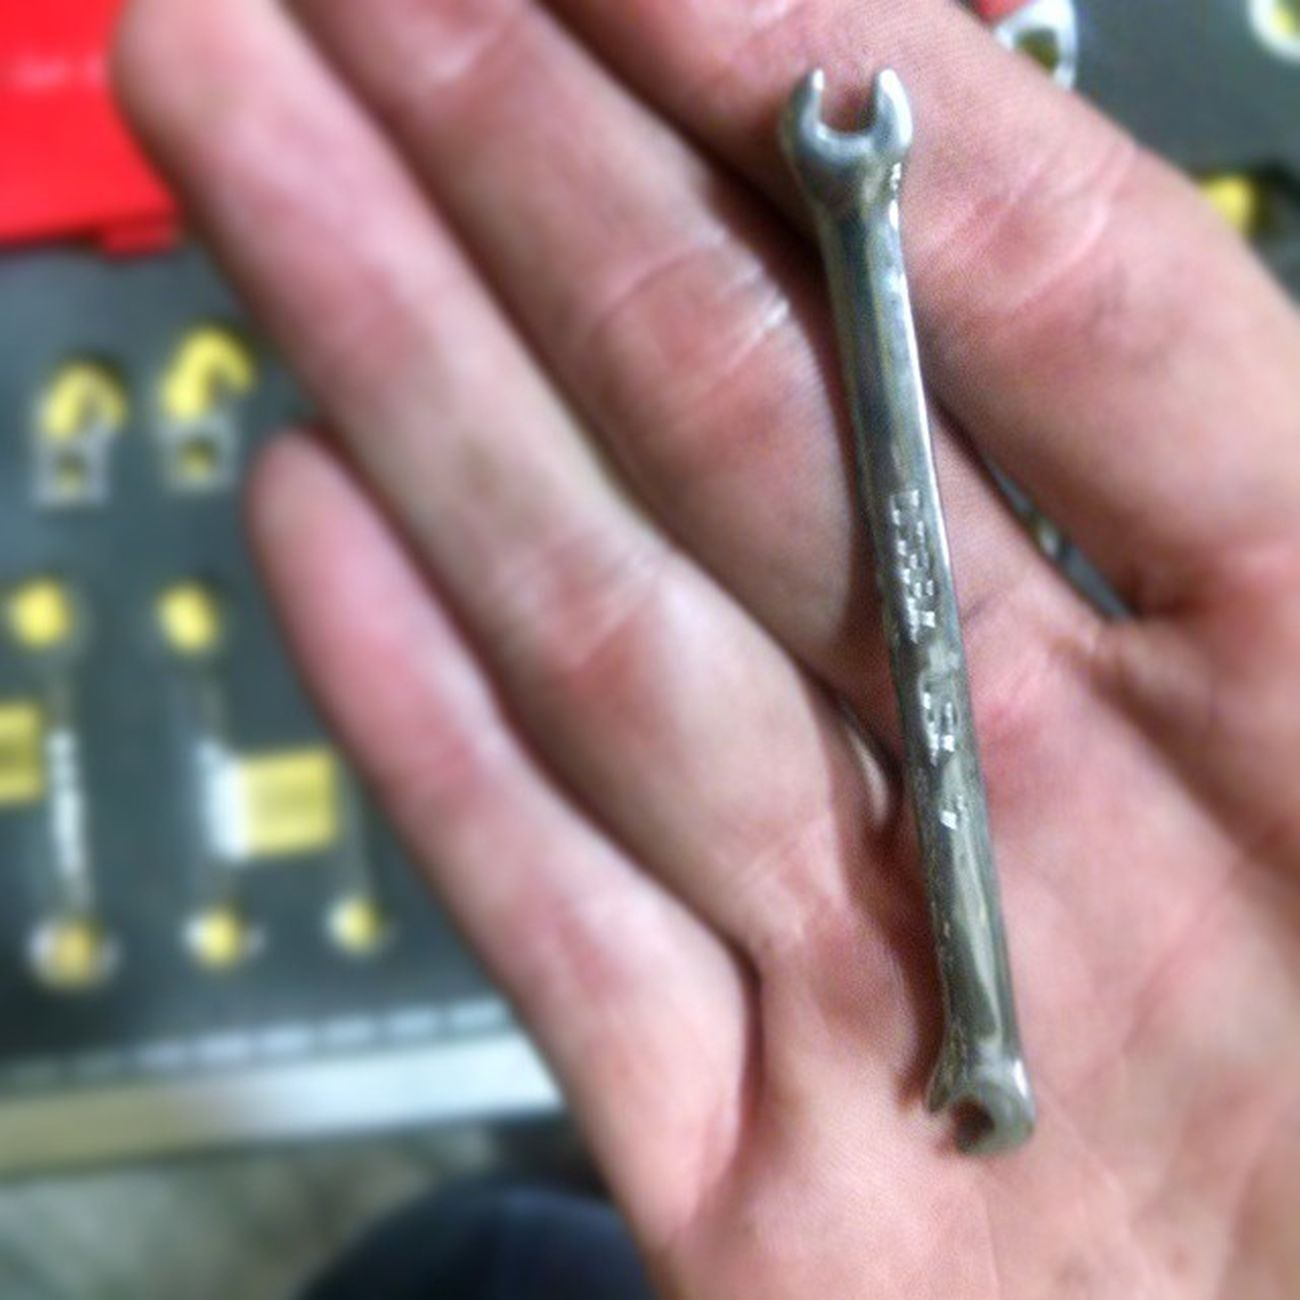 Tiniest wrench in our toolbox. Snapon Wrench  Maintainer F15 strikeeagle